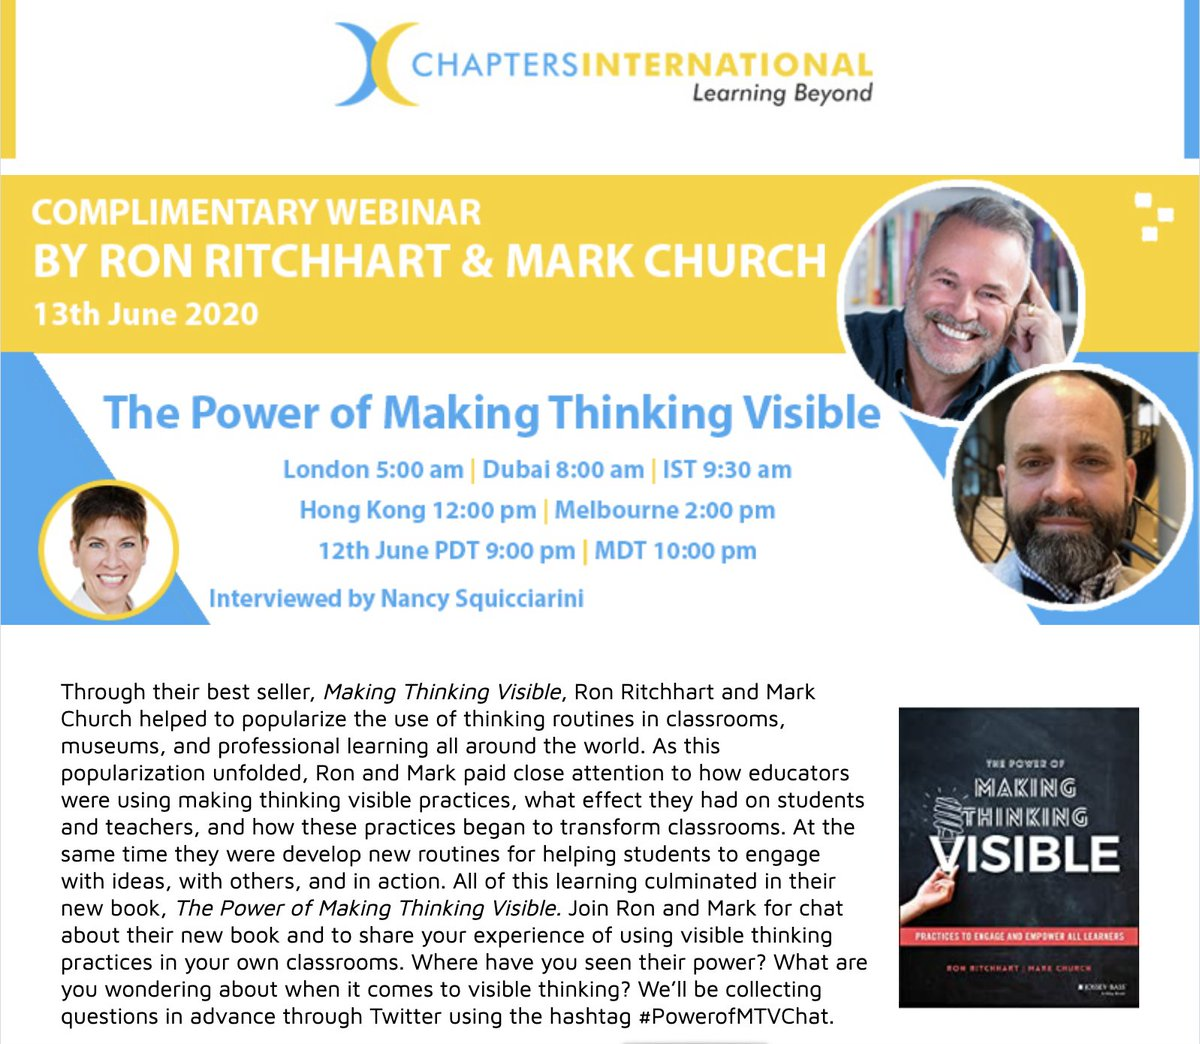 Upcoming (no-cost) webinar chat about our new book, The Power of Making Thinking Visible.  Submit your questions to #PowerofMTVChat. More info at https://t.co/7gllD1IhW4.  We'll also be doing another web chat for NA time zones. Date announced soon. Same #. Submit your questions! https://t.co/Lqcyxv4MTR